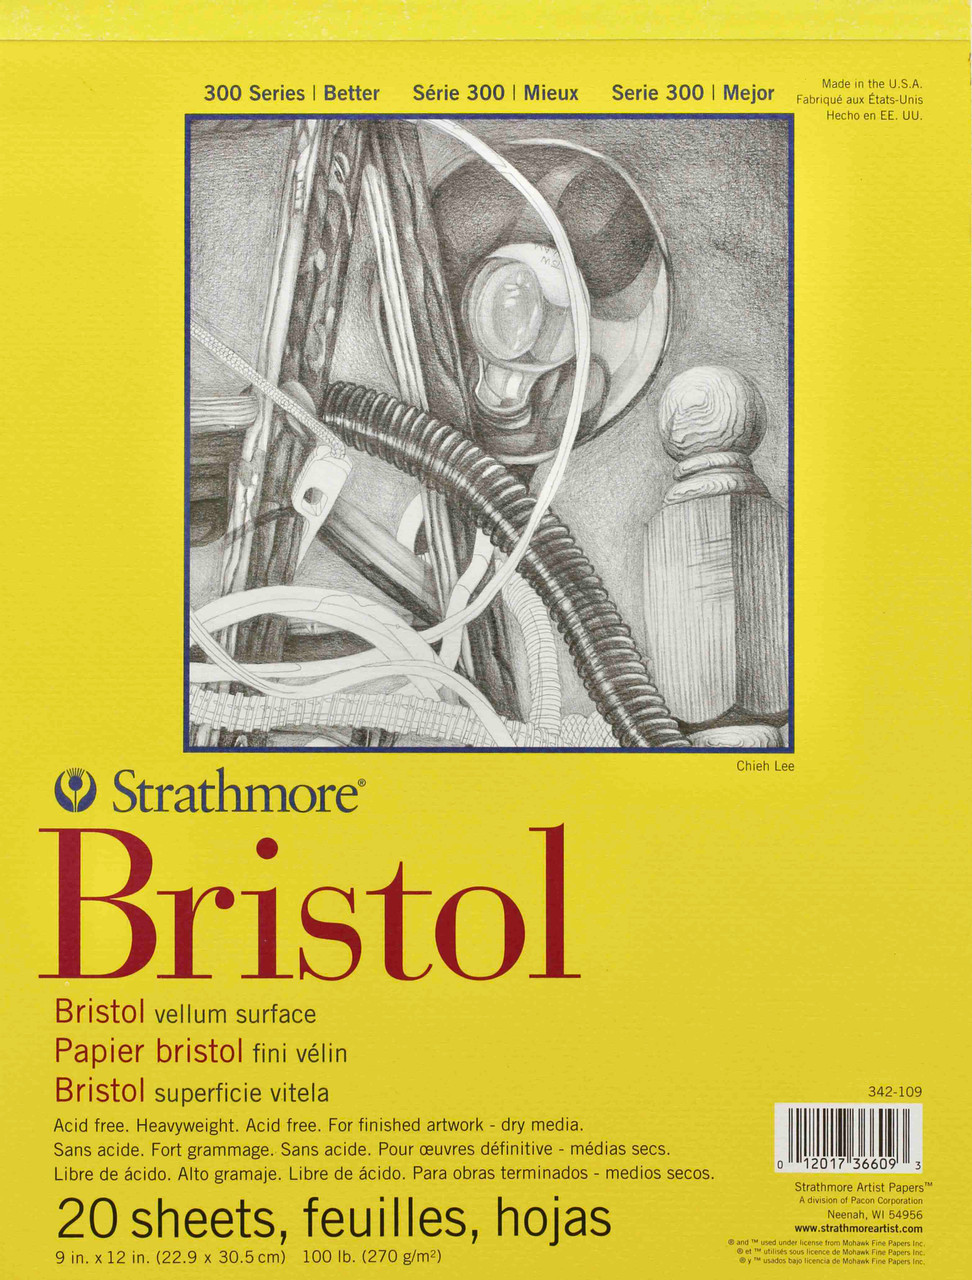 Strathmore 342-109 300 Series Bristol Vellum Pad 20 Sheets 2 Pack 9x12 Tape Bound